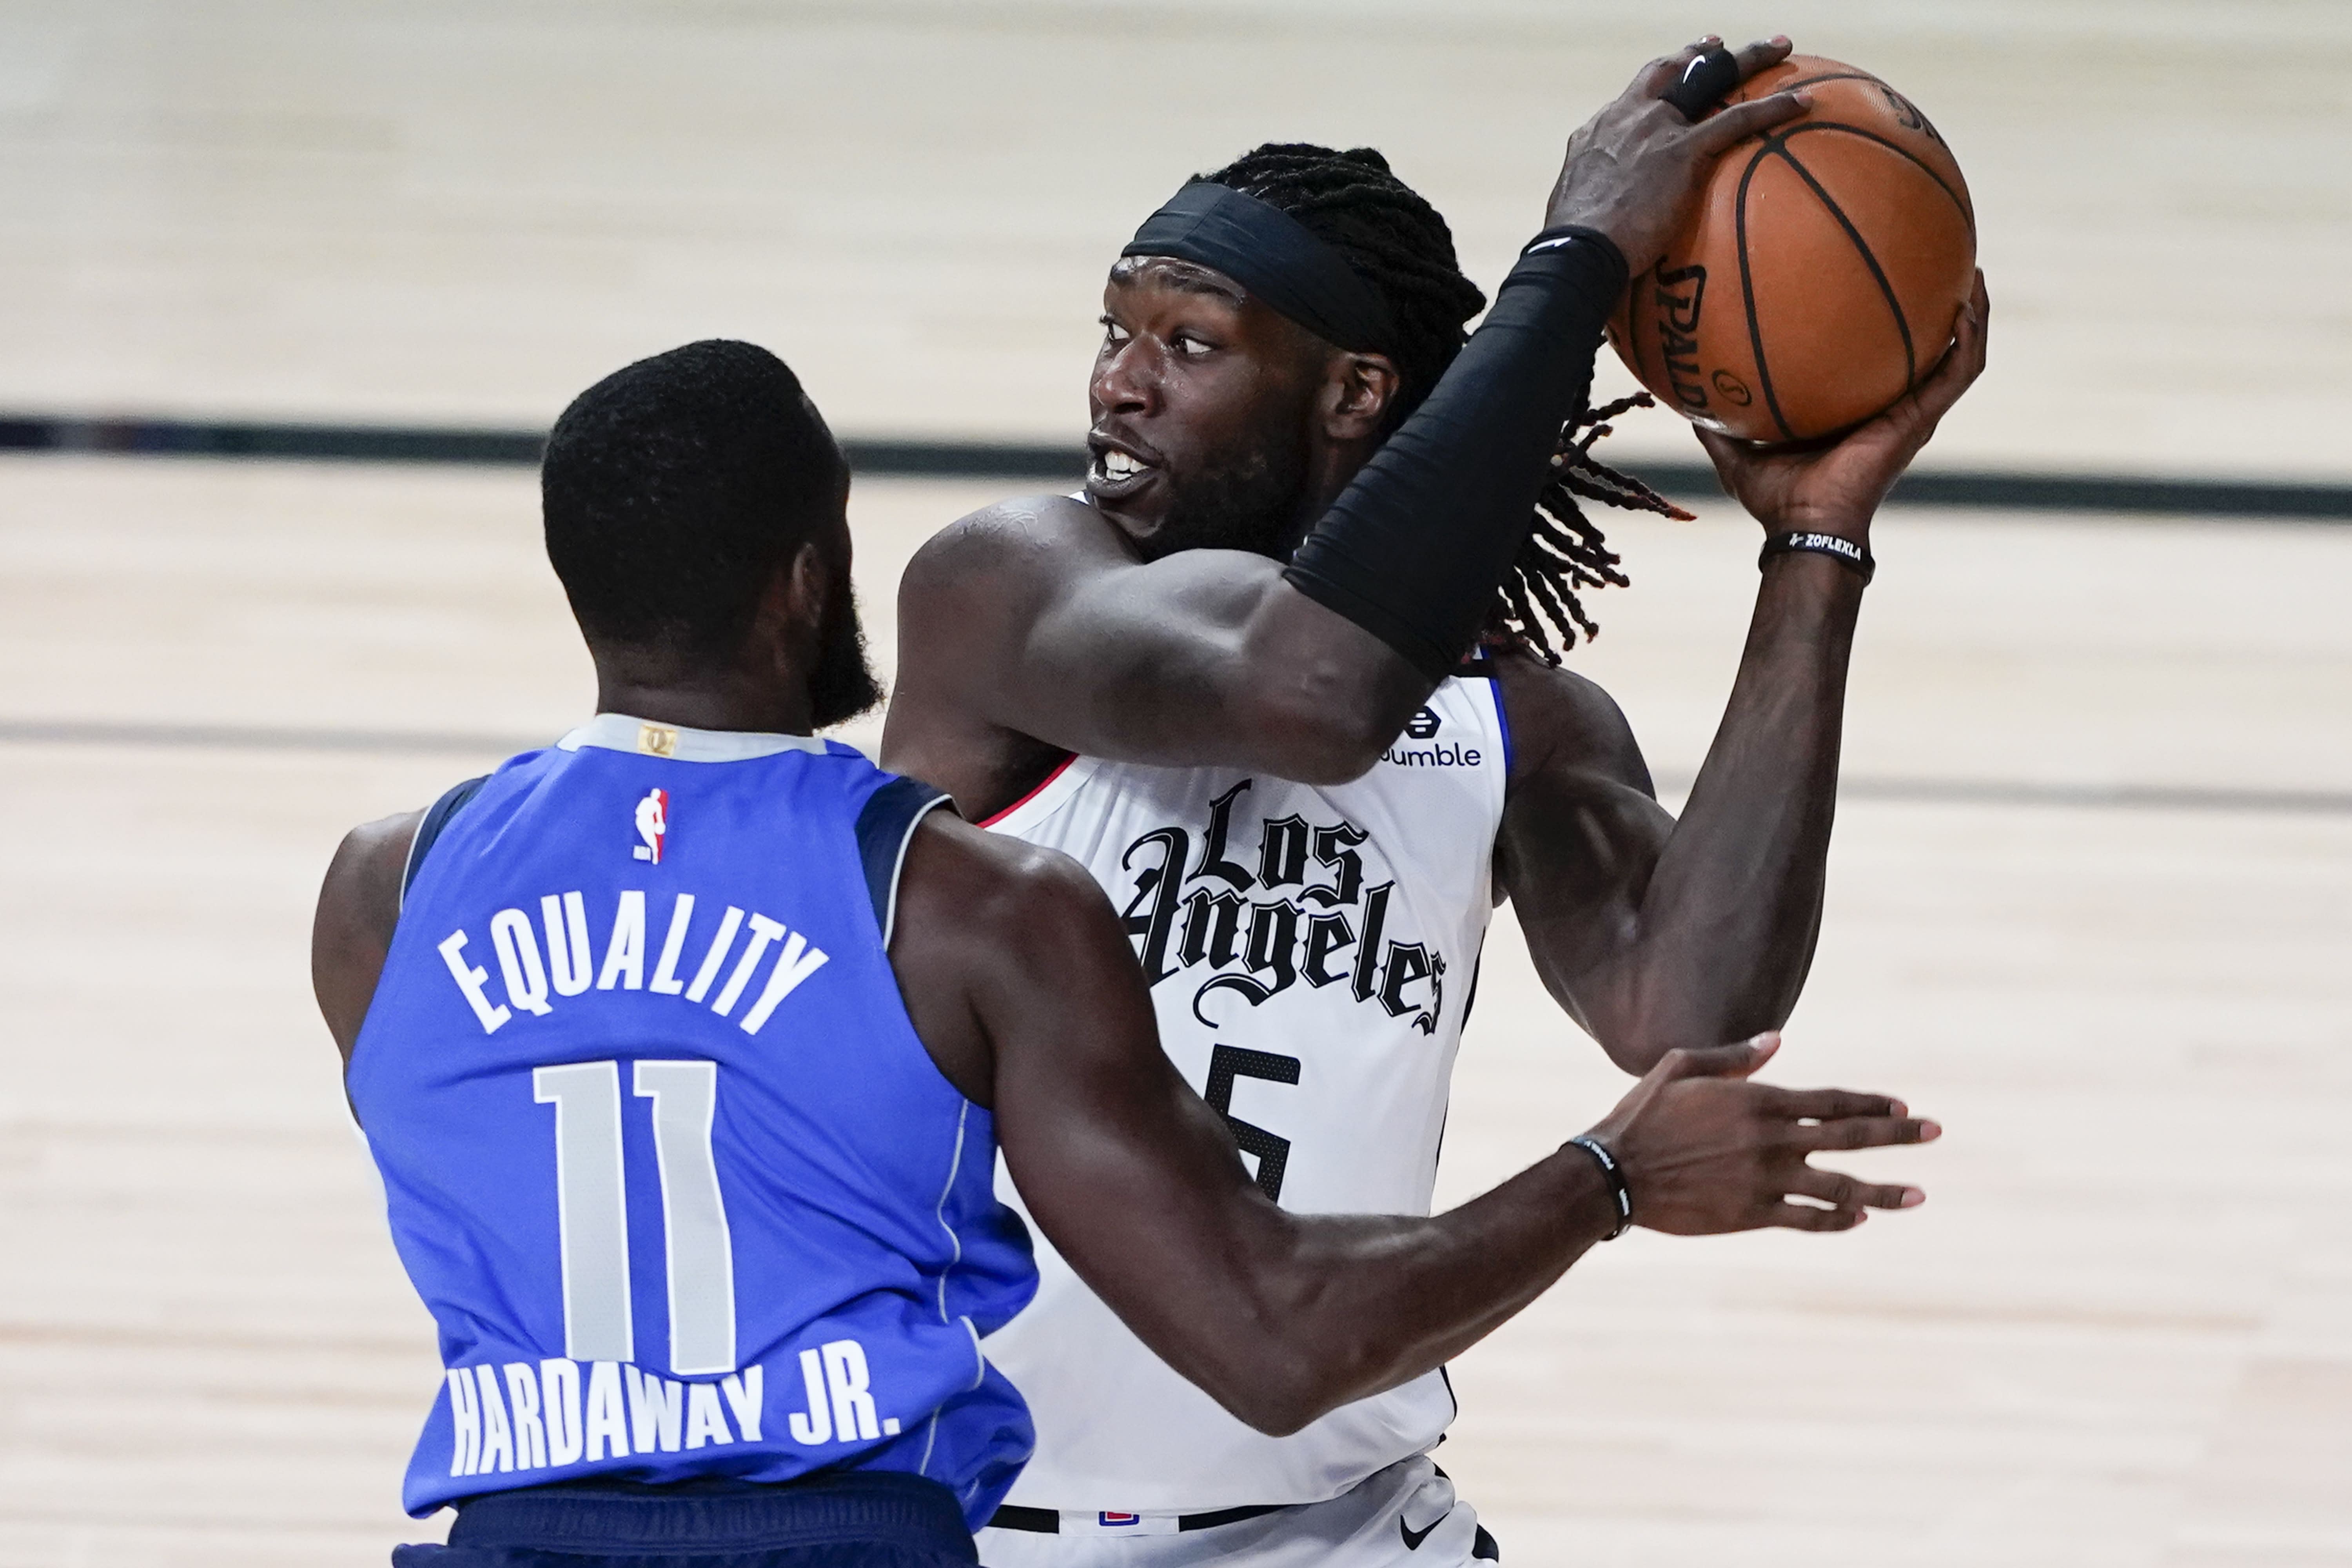 Twitter went all-in on Clippers Montrezl Harrell after venting about Falcons loss